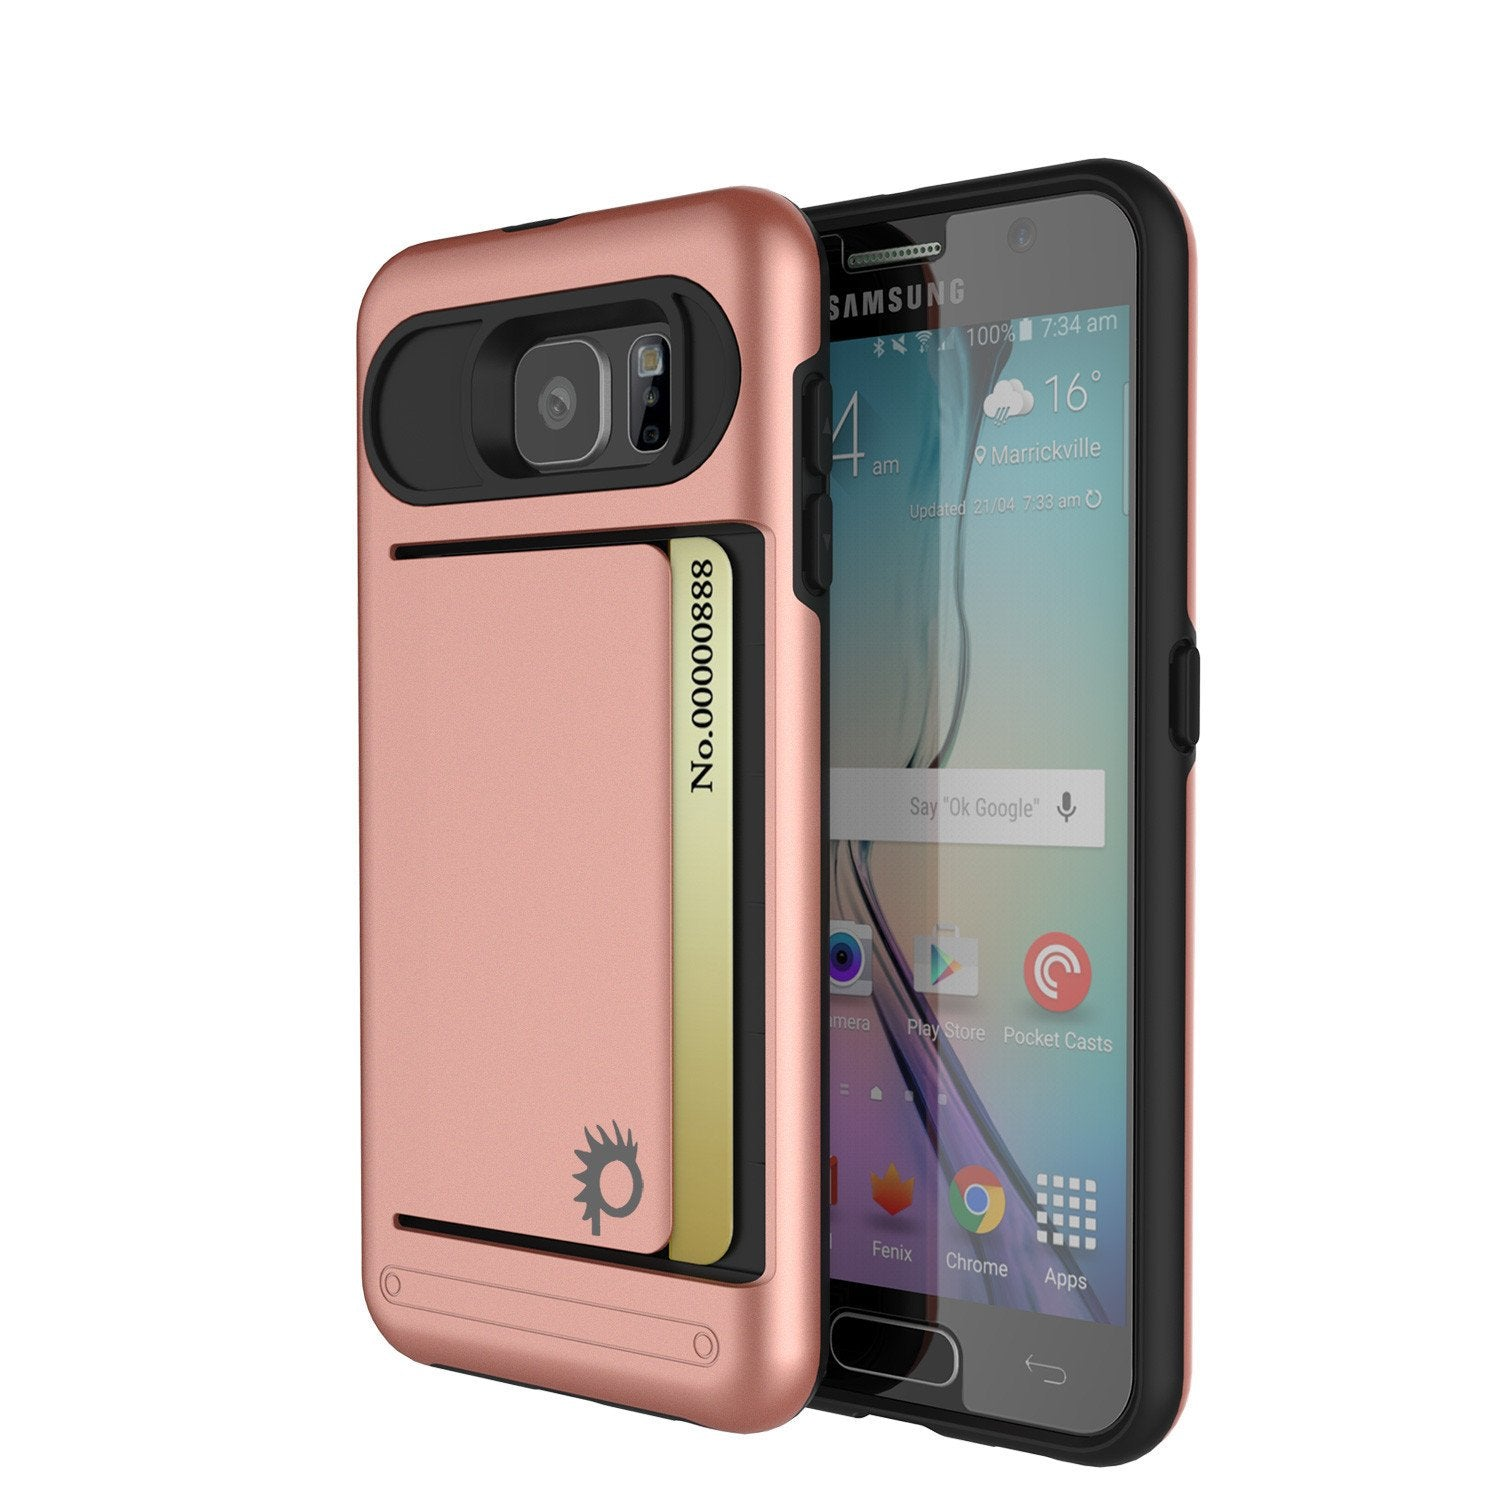 Galaxy S6 EDGE Plus Case PunkCase CLUTCH Rose Gold Series Slim Armor Soft Cover w/ Screen Protector